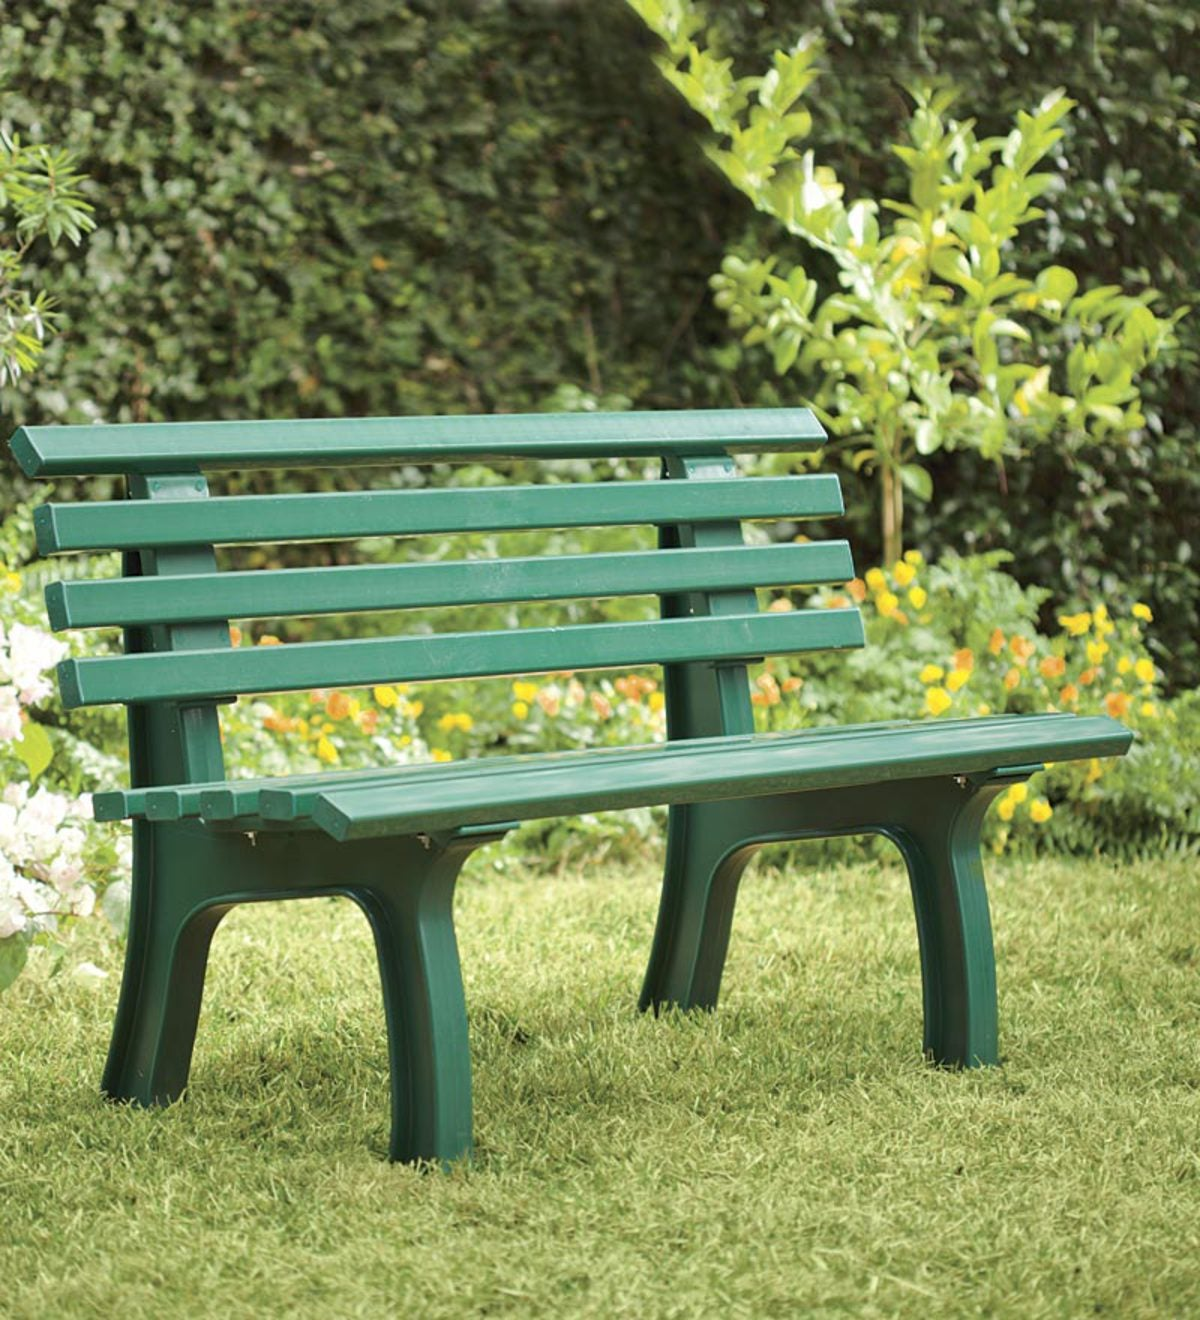 German-Made, Weatherproof Resin Garden Bench - Green